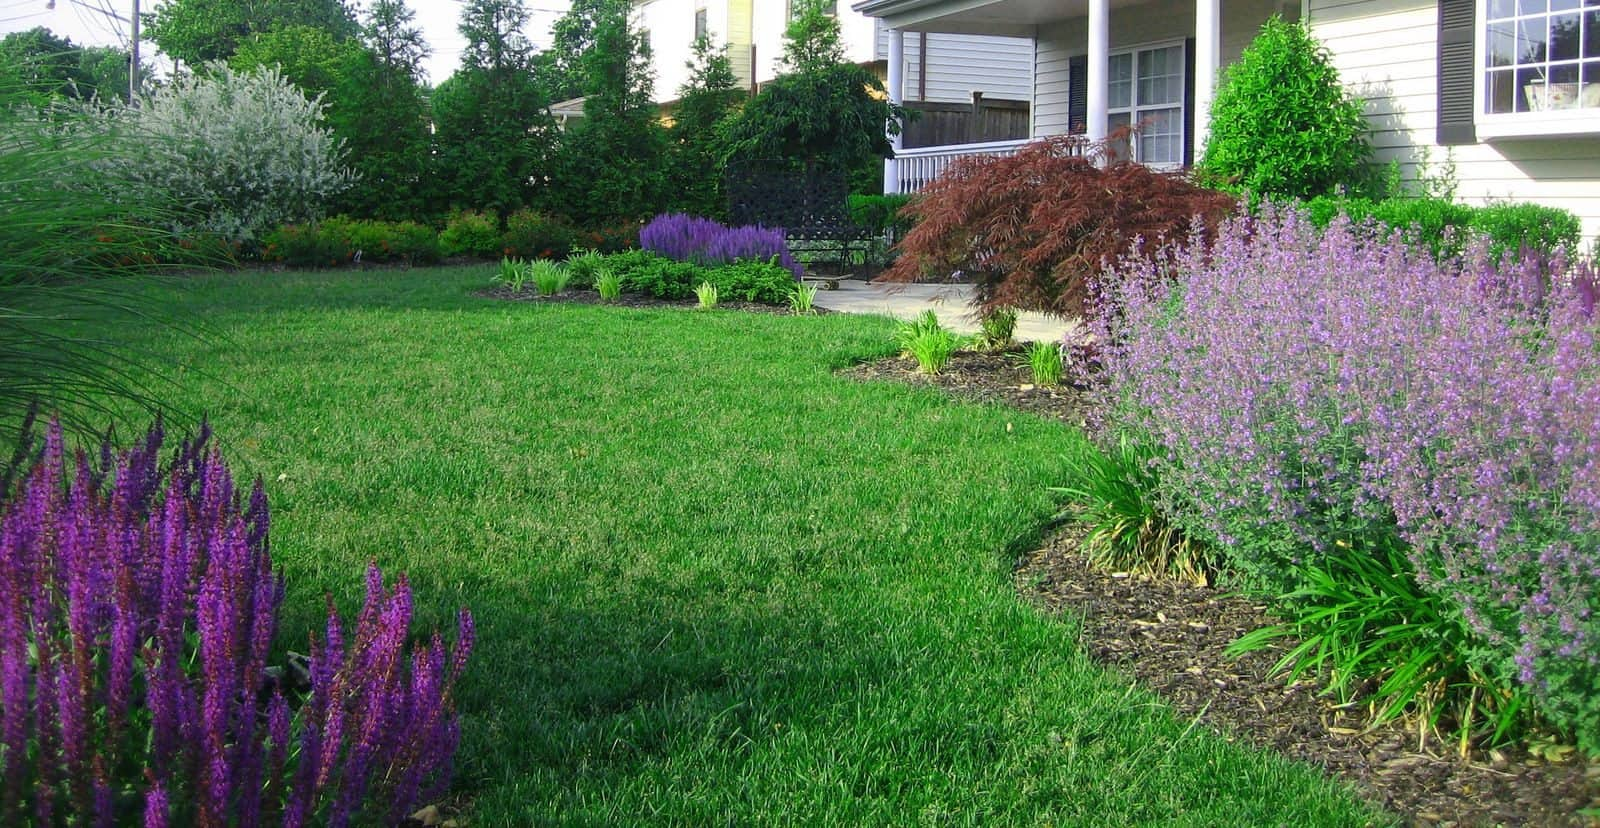 Landscape Plantings - Salvia May Night, Nepeta Walkers Low, Dwarf Japanese Maple - Dix Hills, Long Island NY